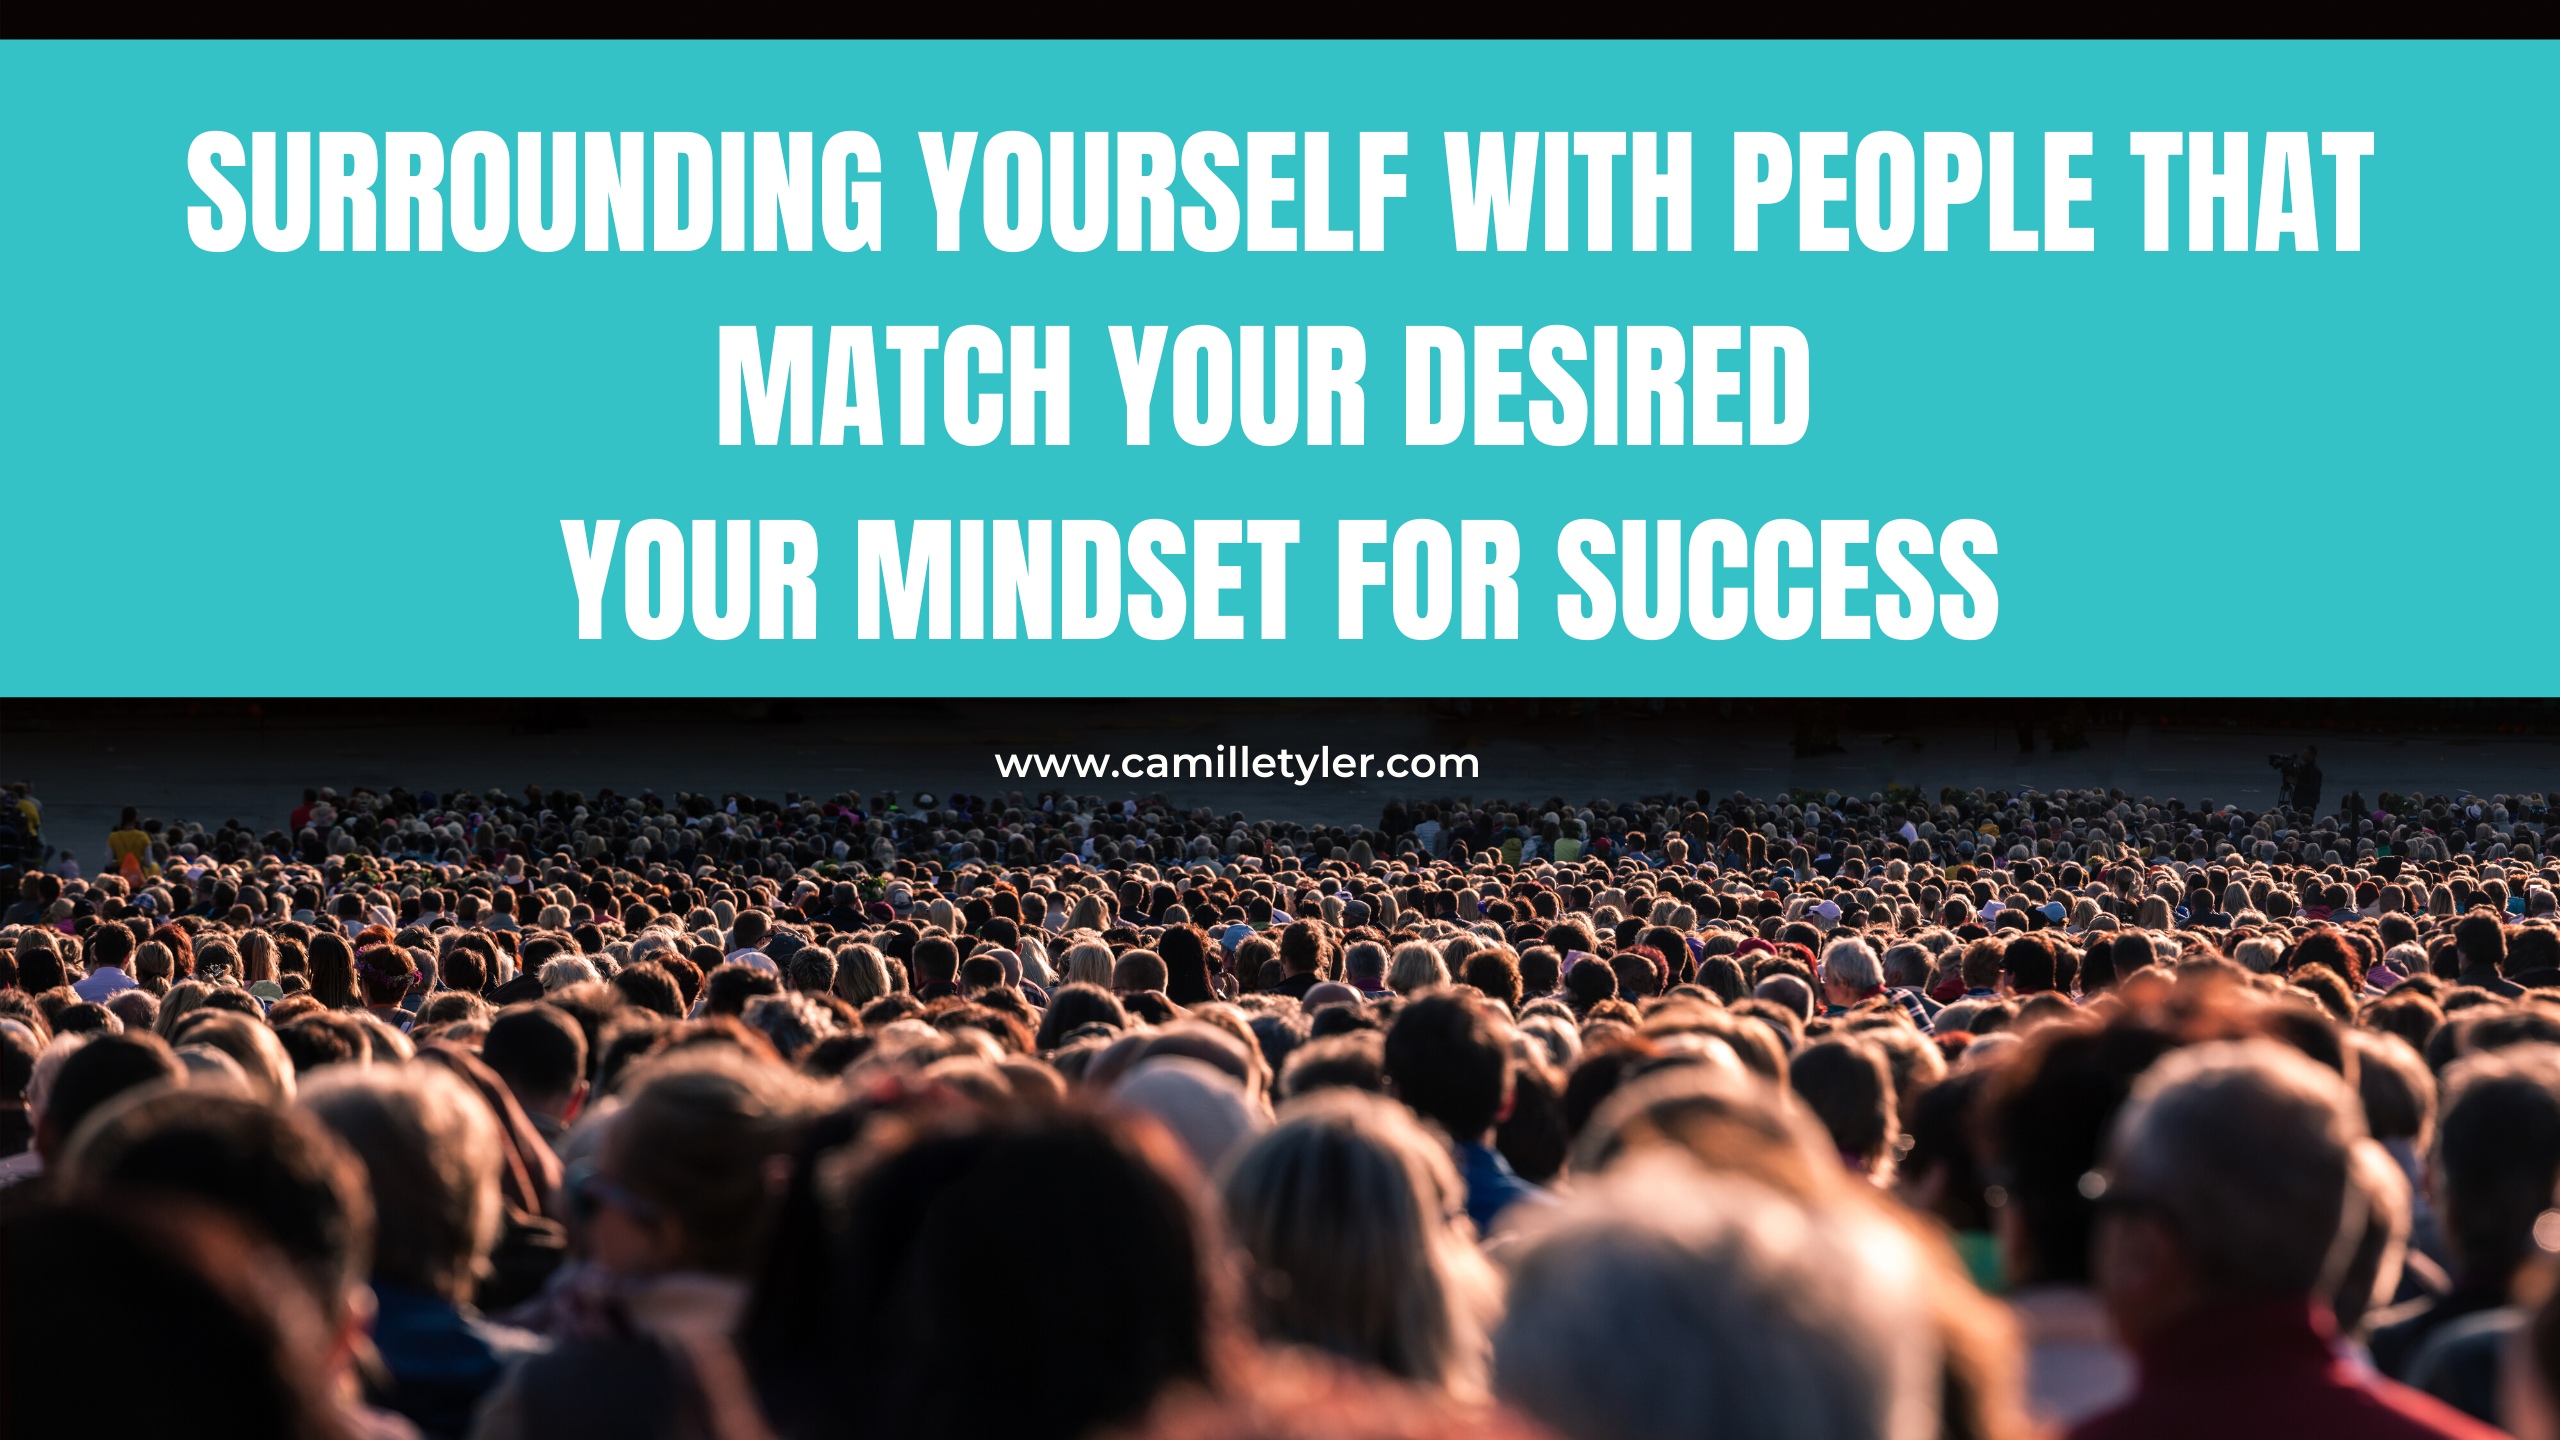 Surrounding Yourself with people that match your desired Your Mindset for Success